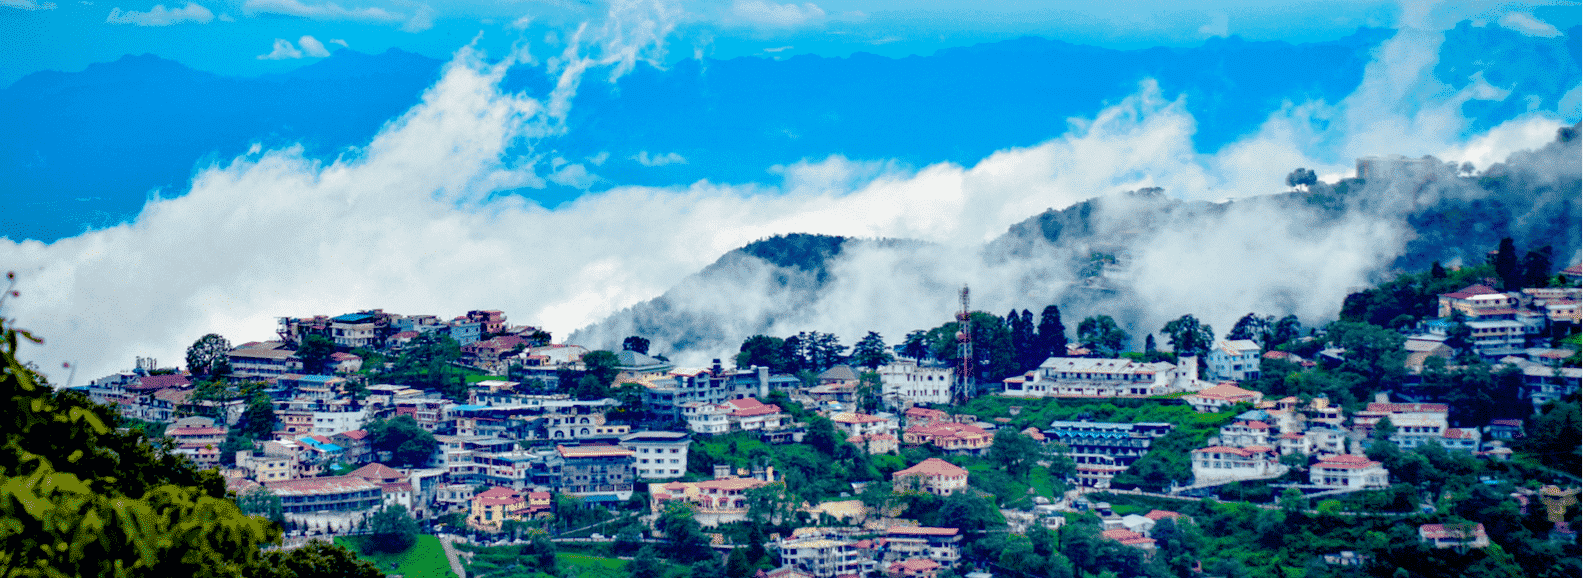 Mussoorie tourist place is one of the best places to visit in Uttarakhand